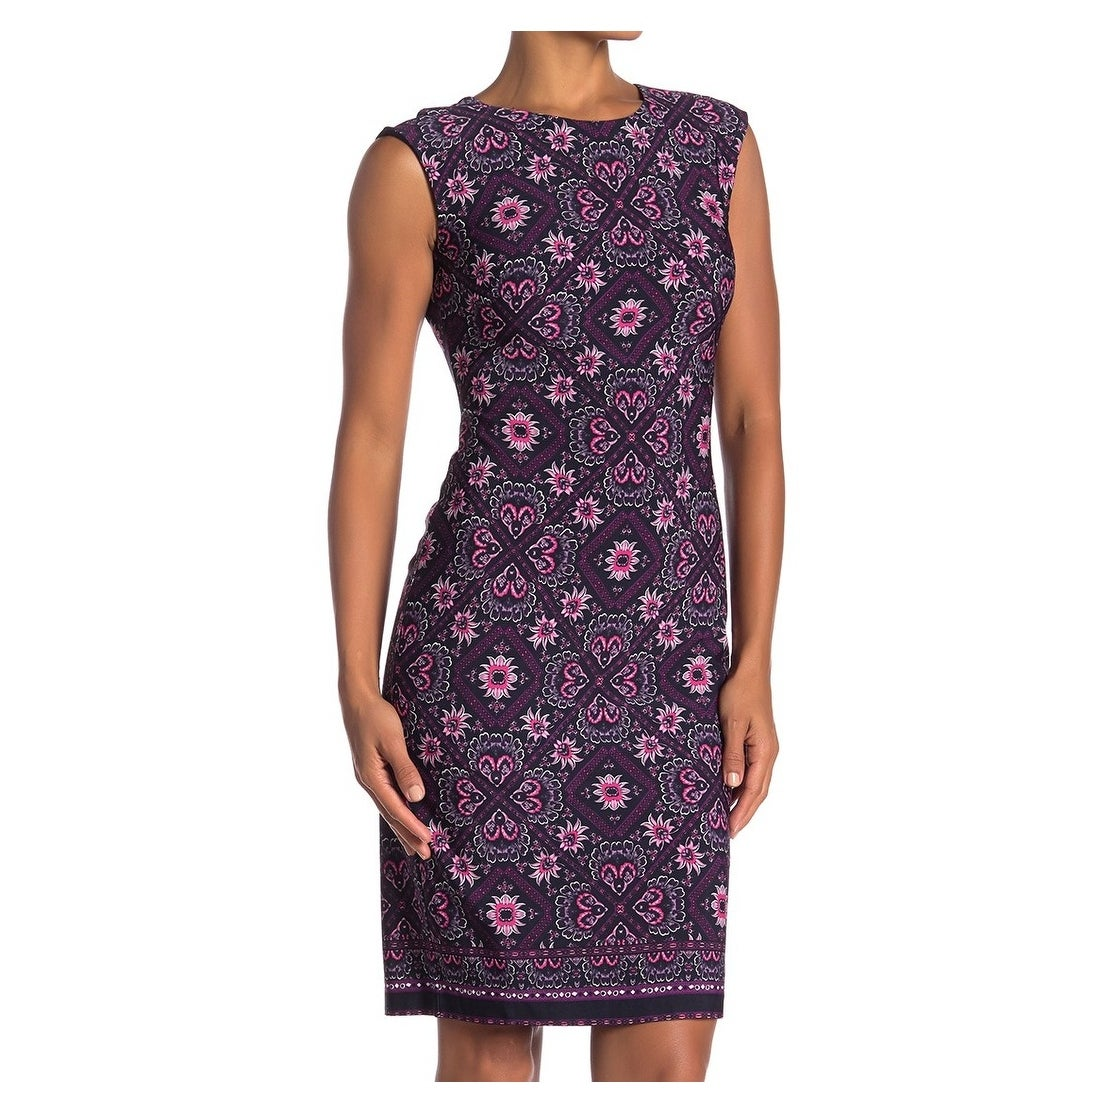 46ec62b6 New Products - Vince Camuto Dresses | Find Great Women's Clothing Deals  Shopping at Overstock